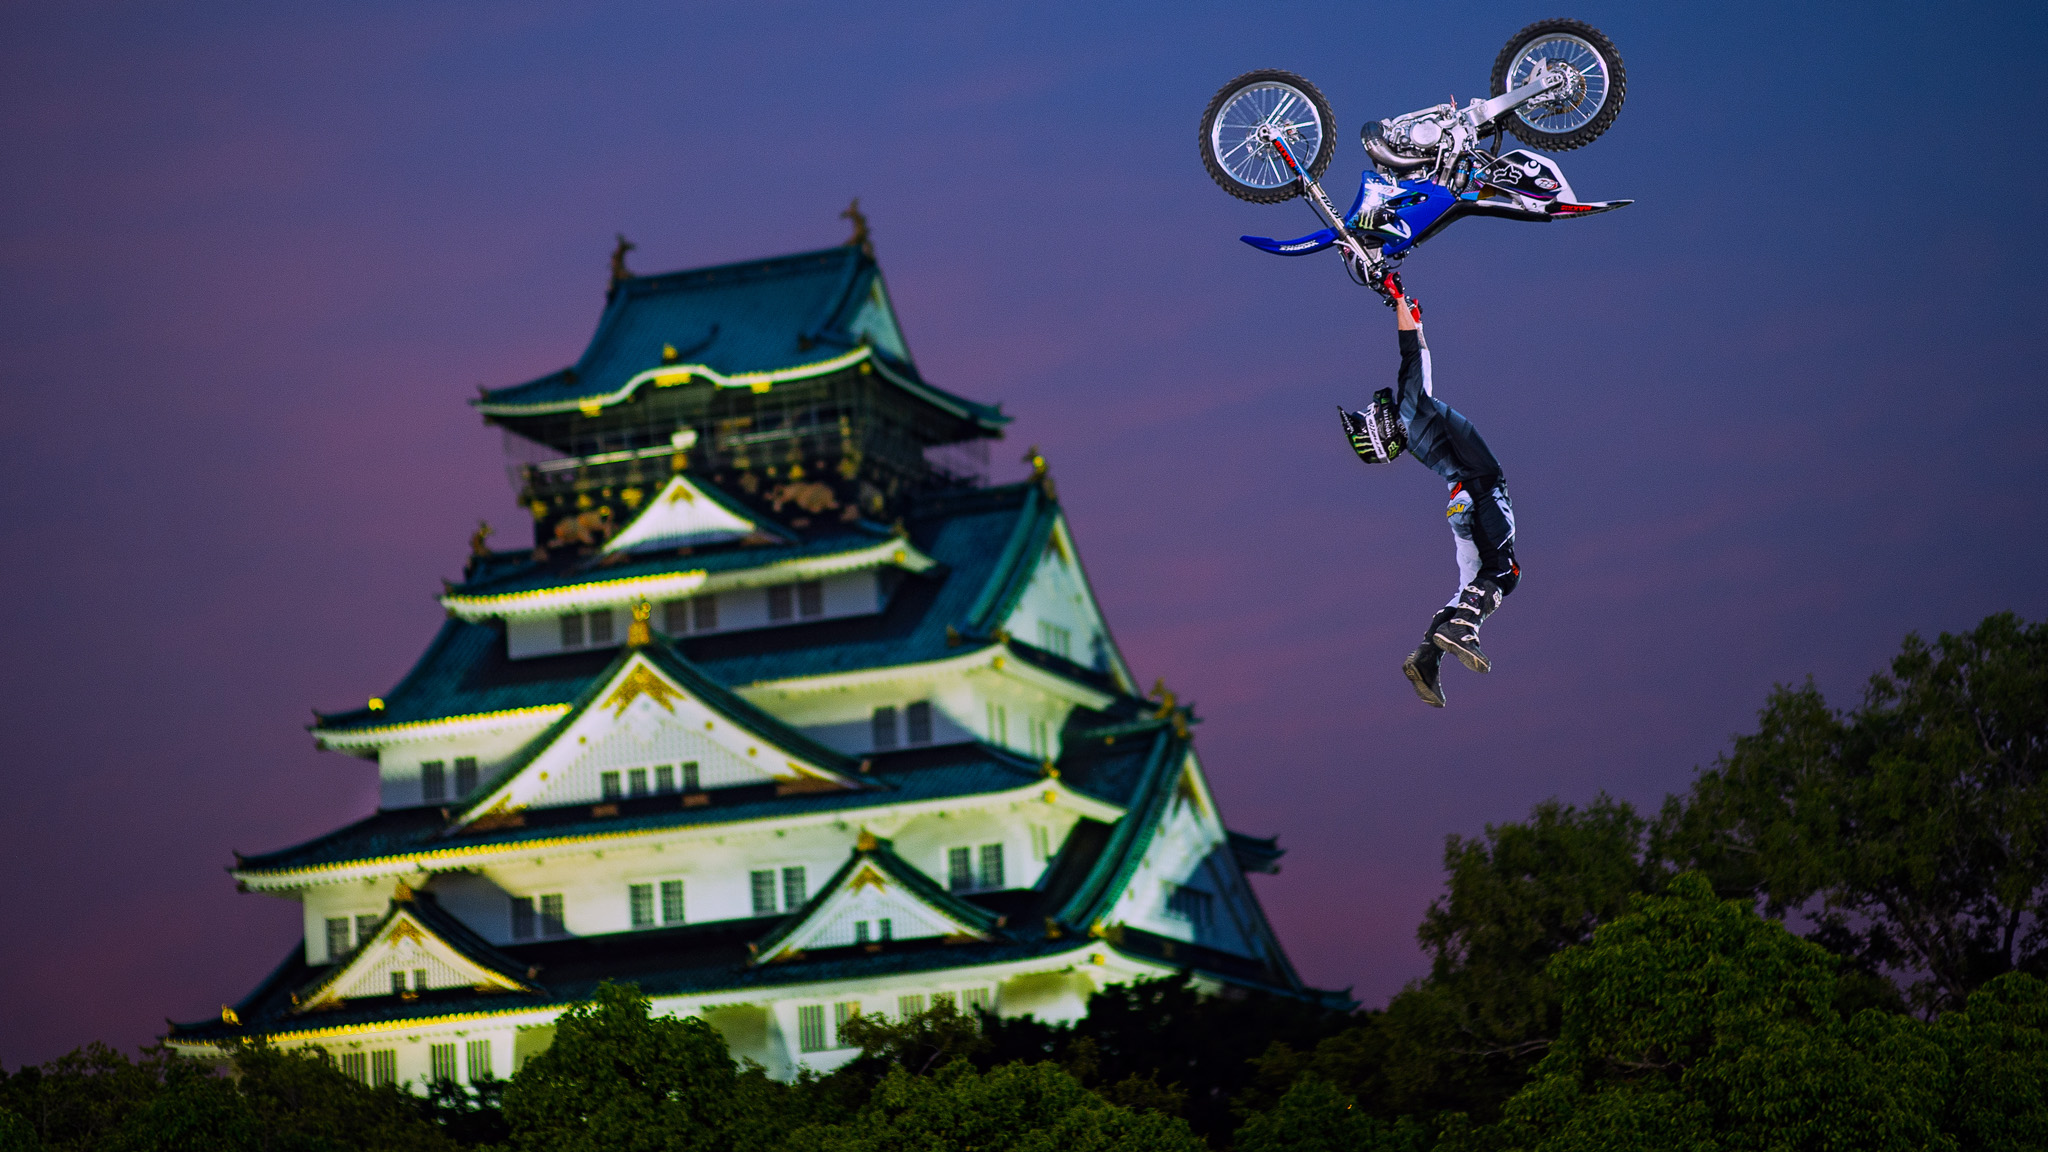 Browse Through Our Gallery Of Images From The Red Bull X Fighters Stop In Osaka Japan